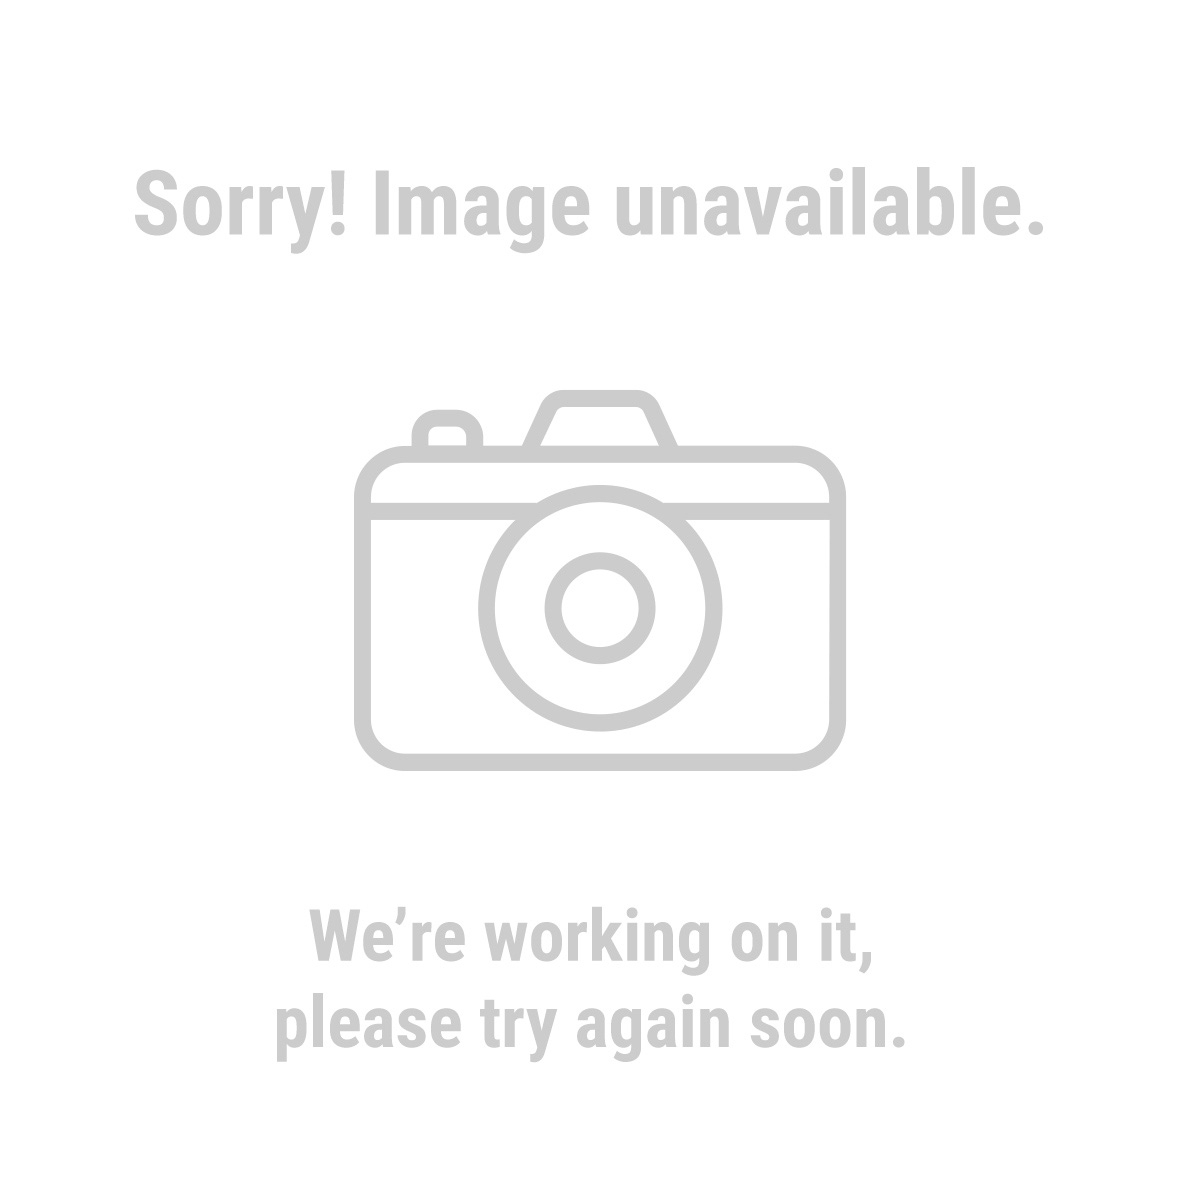 Pittsburgh® 93424 8 Piece Pin Punch Set